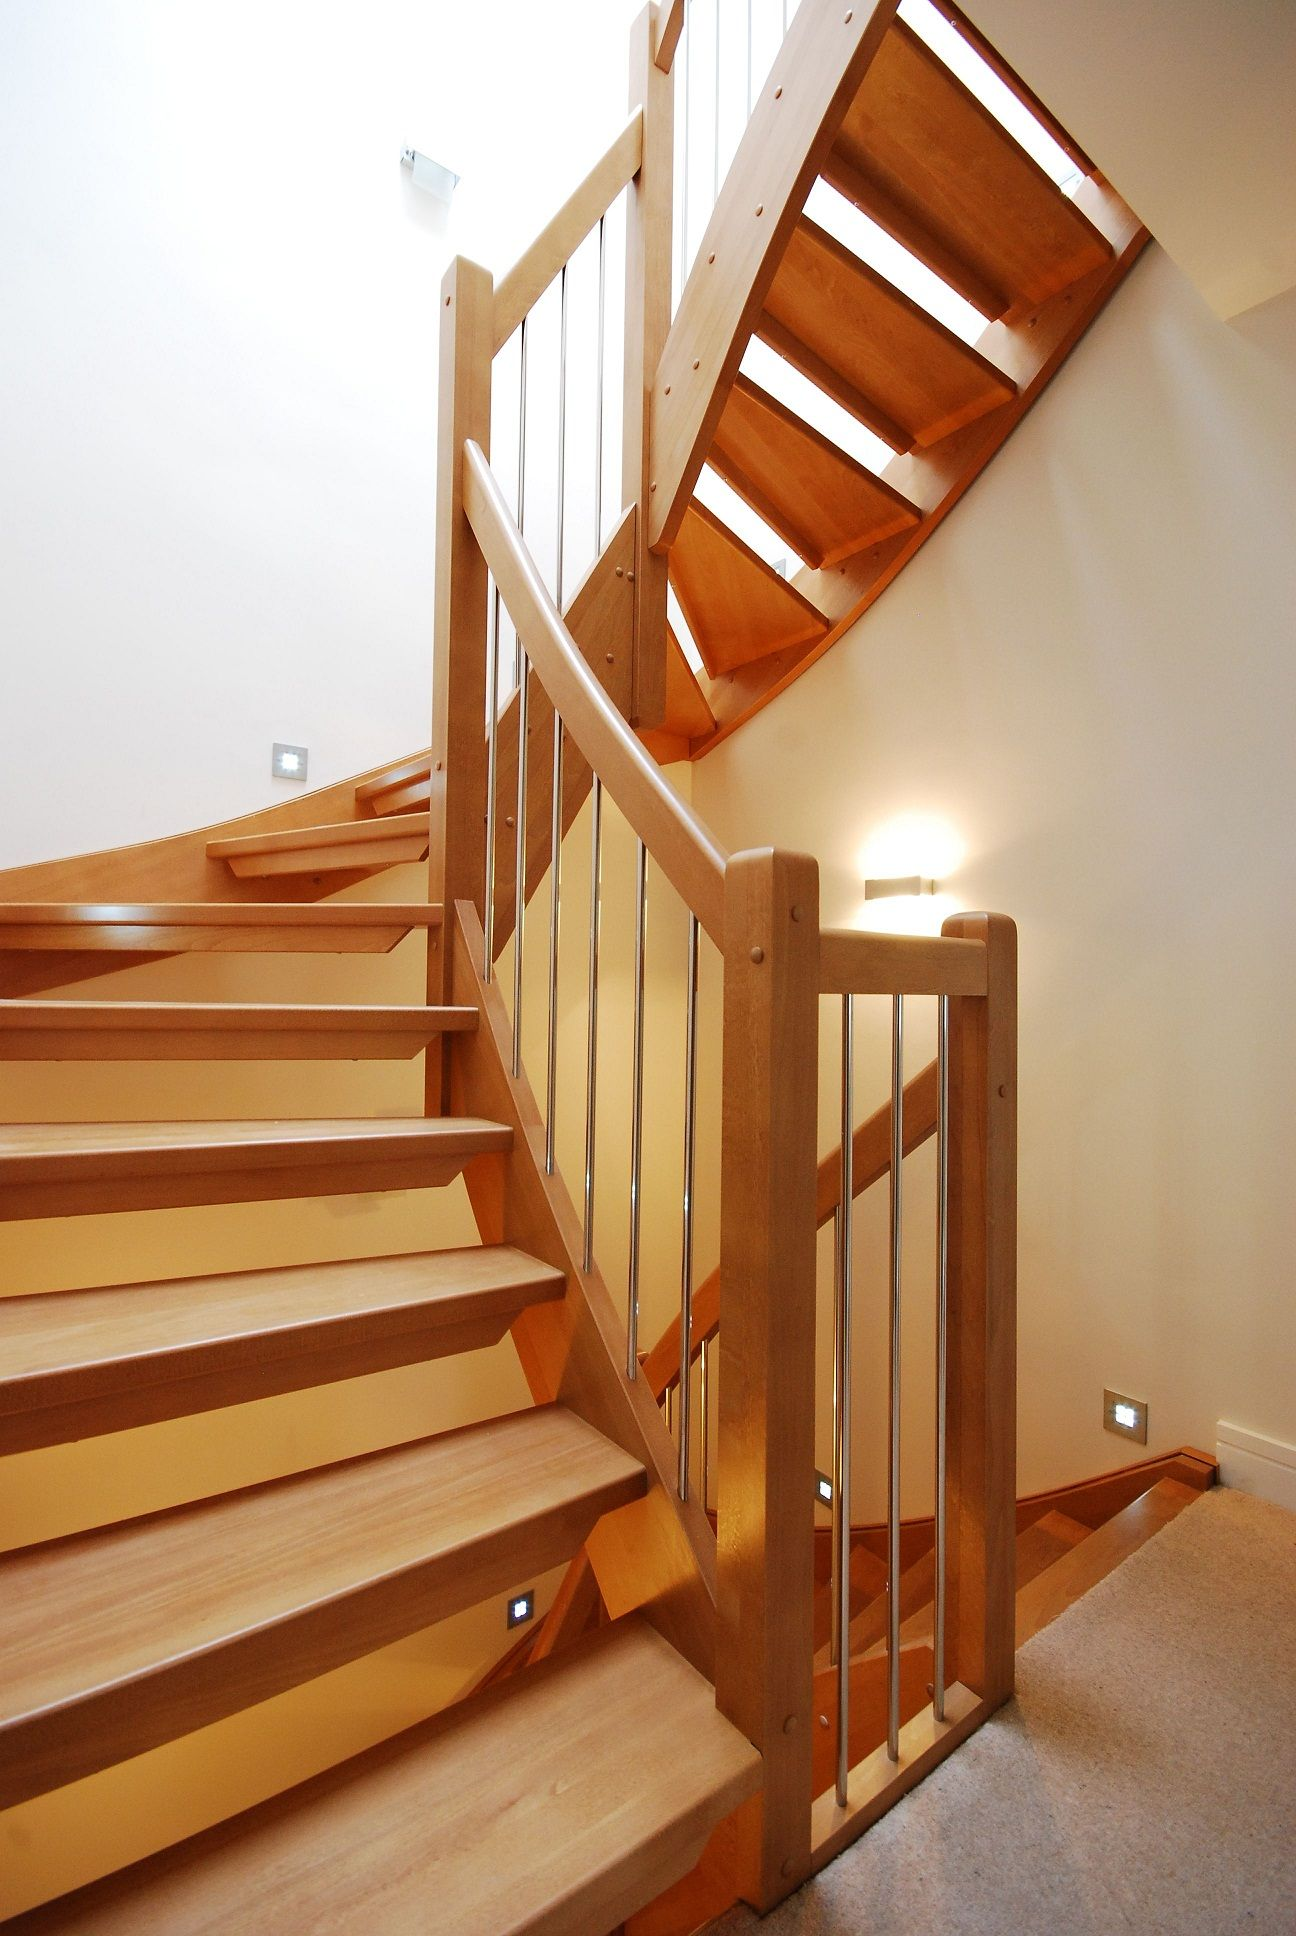 Fancy and modern wooden staircase | Design - Staircase ...